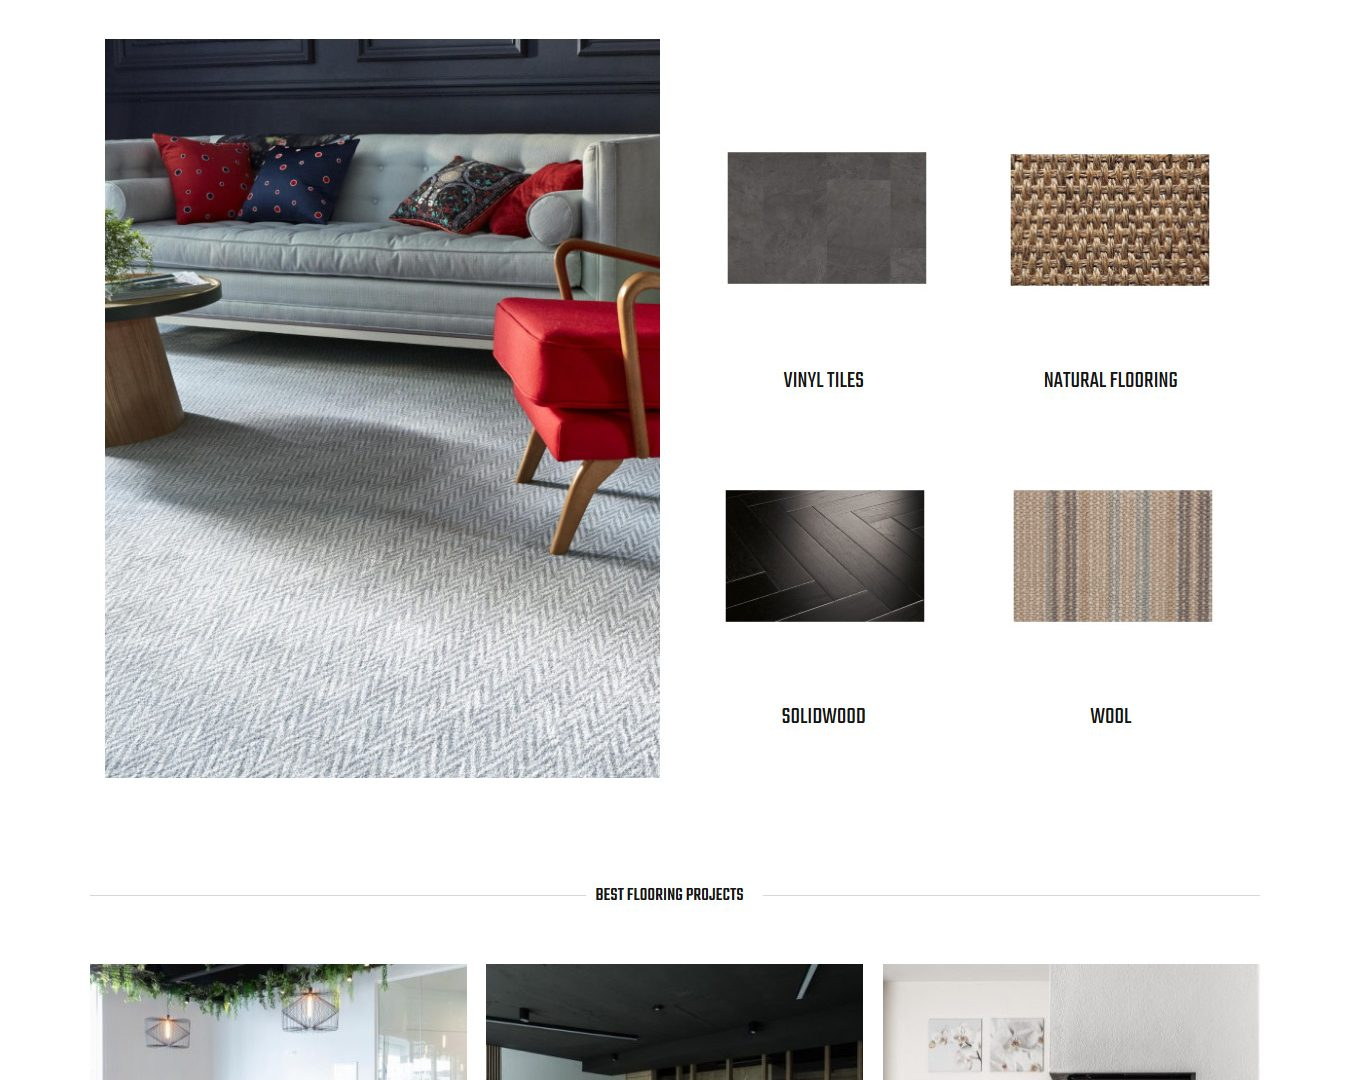 web site for a flooring company